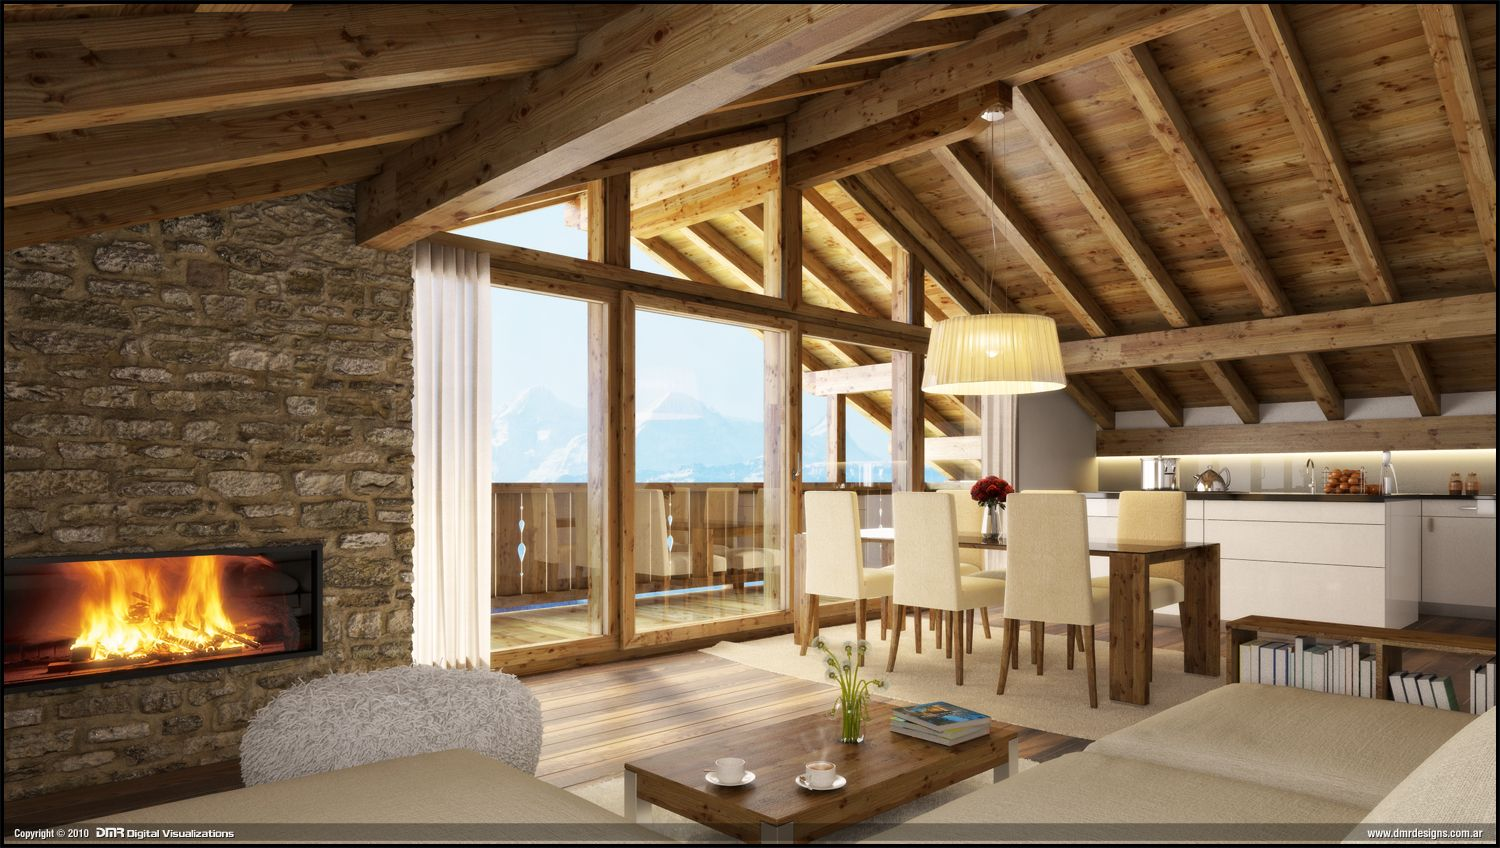 Wood house interior by diegoreales on deviantart